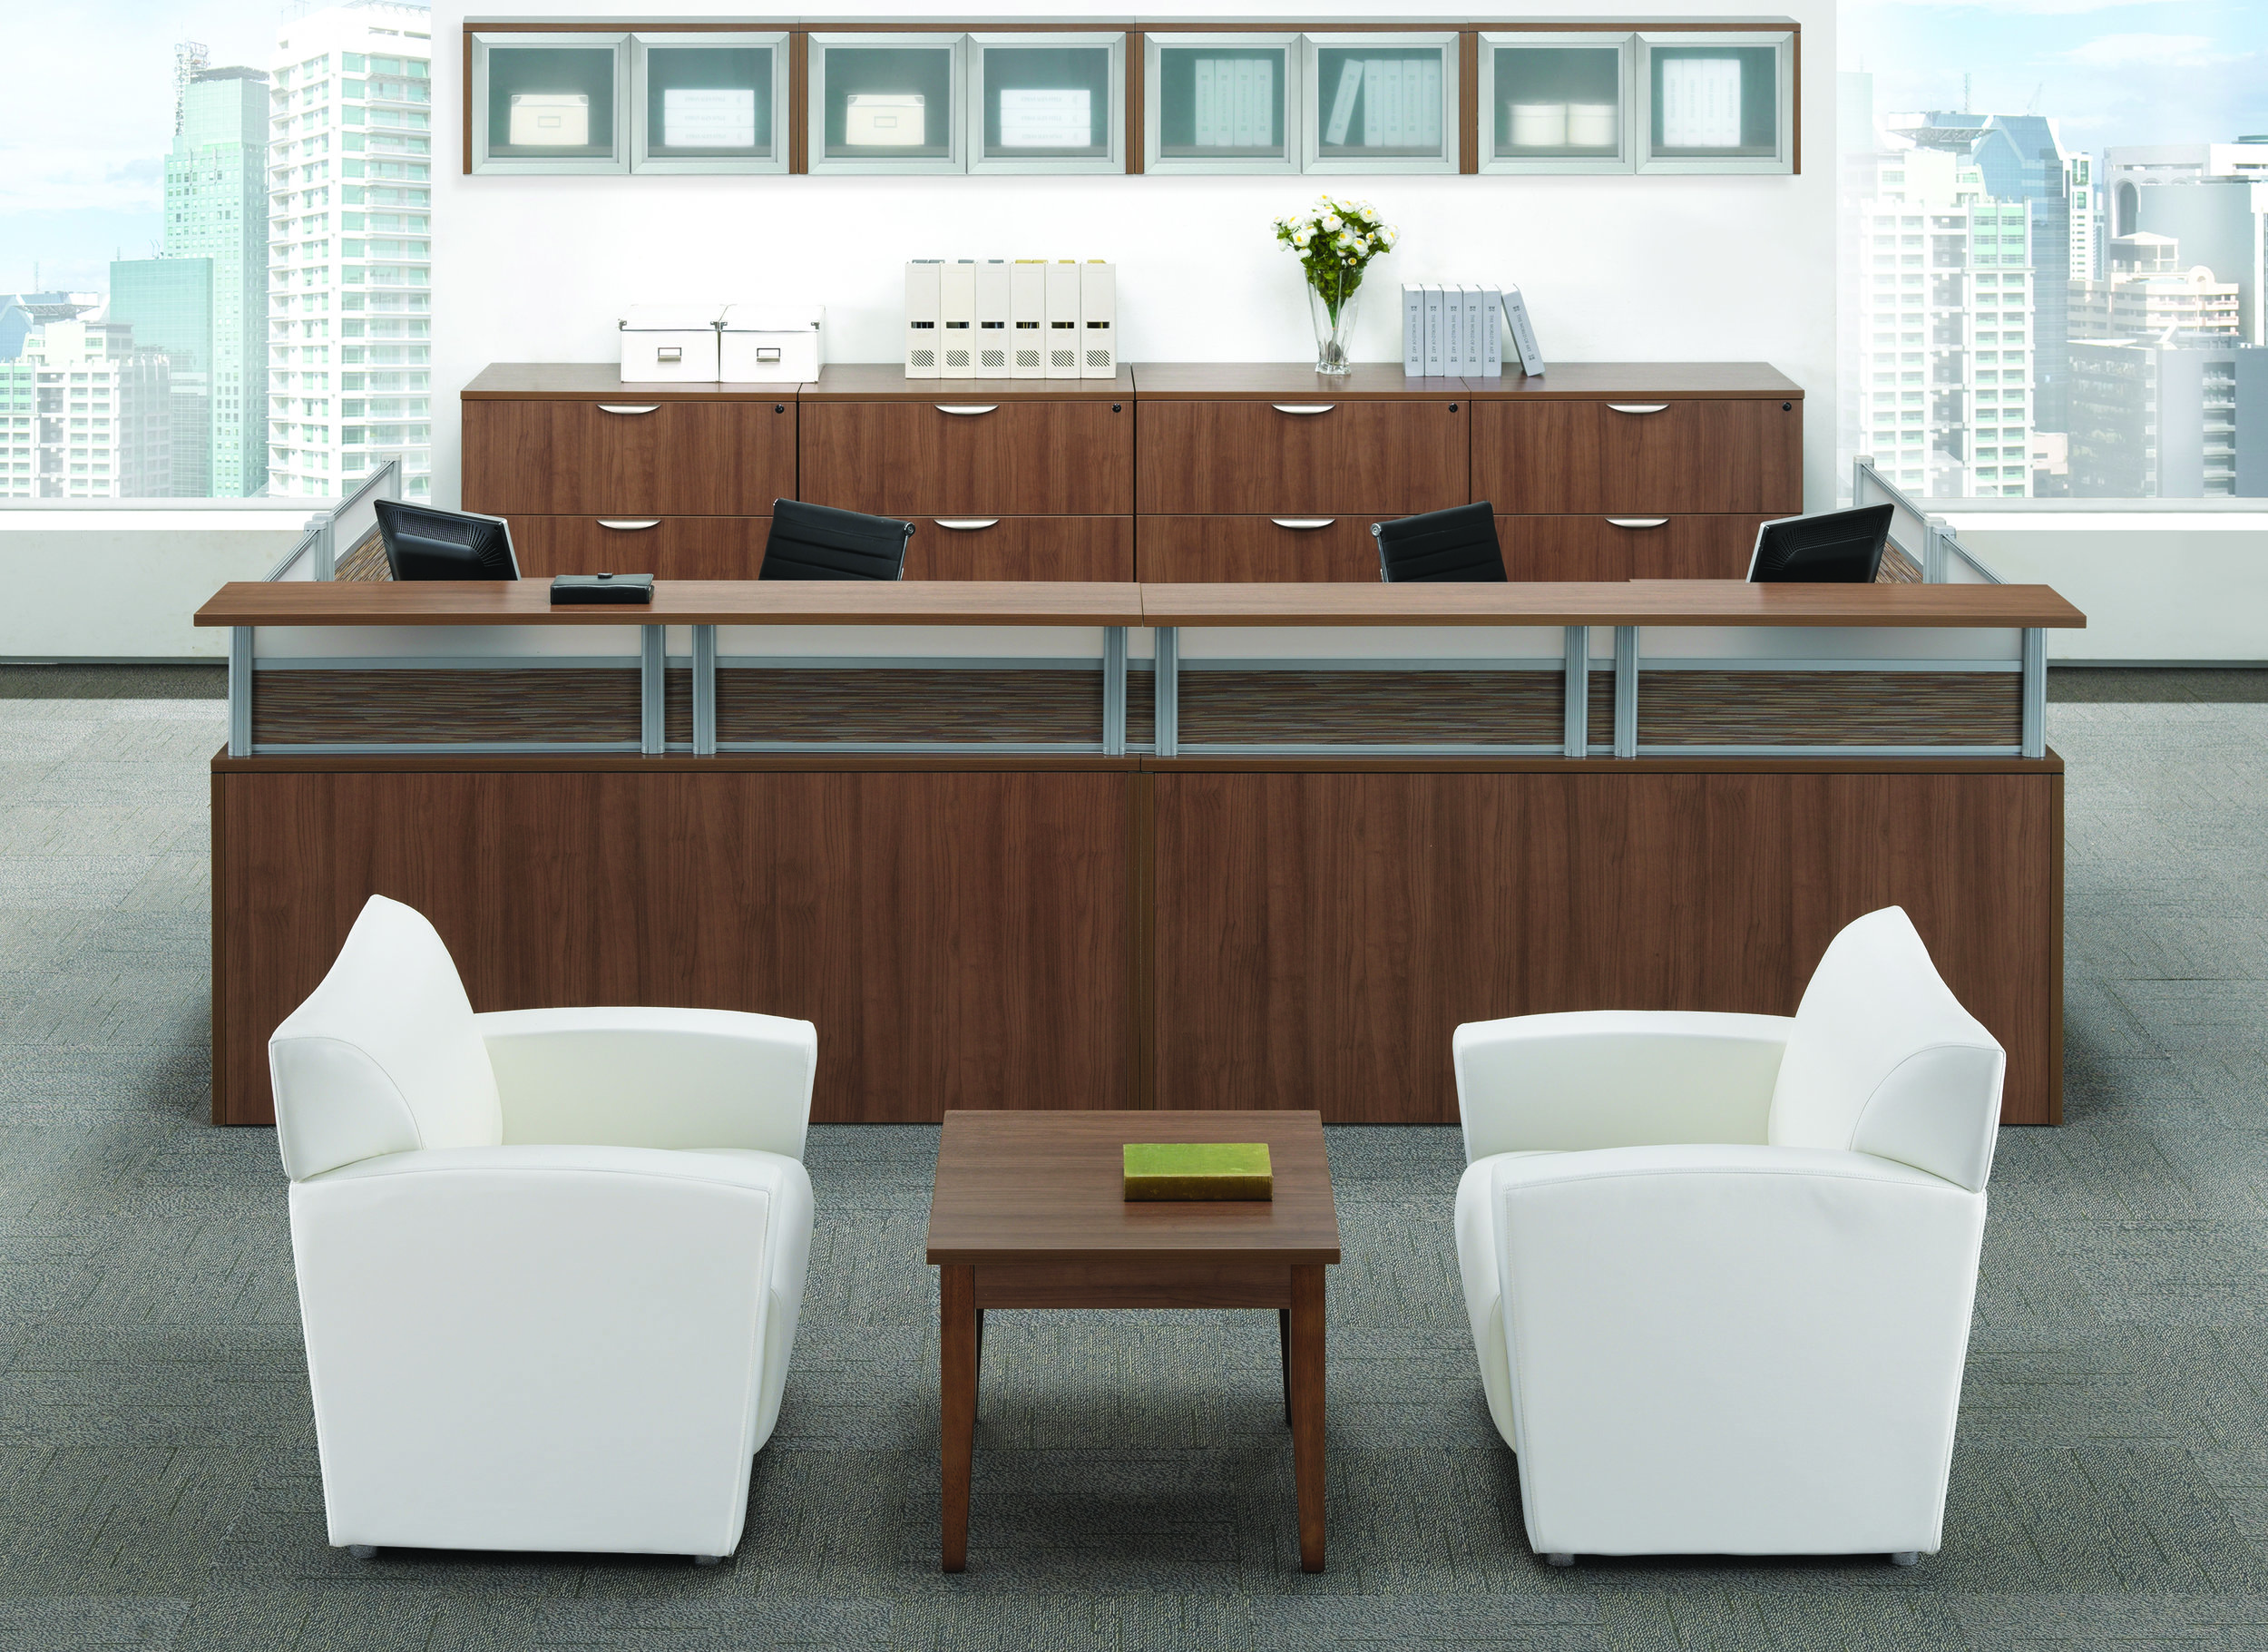 PER-SUITEPLB04-MW-1 offered by Indoff Office Interiors.jpg